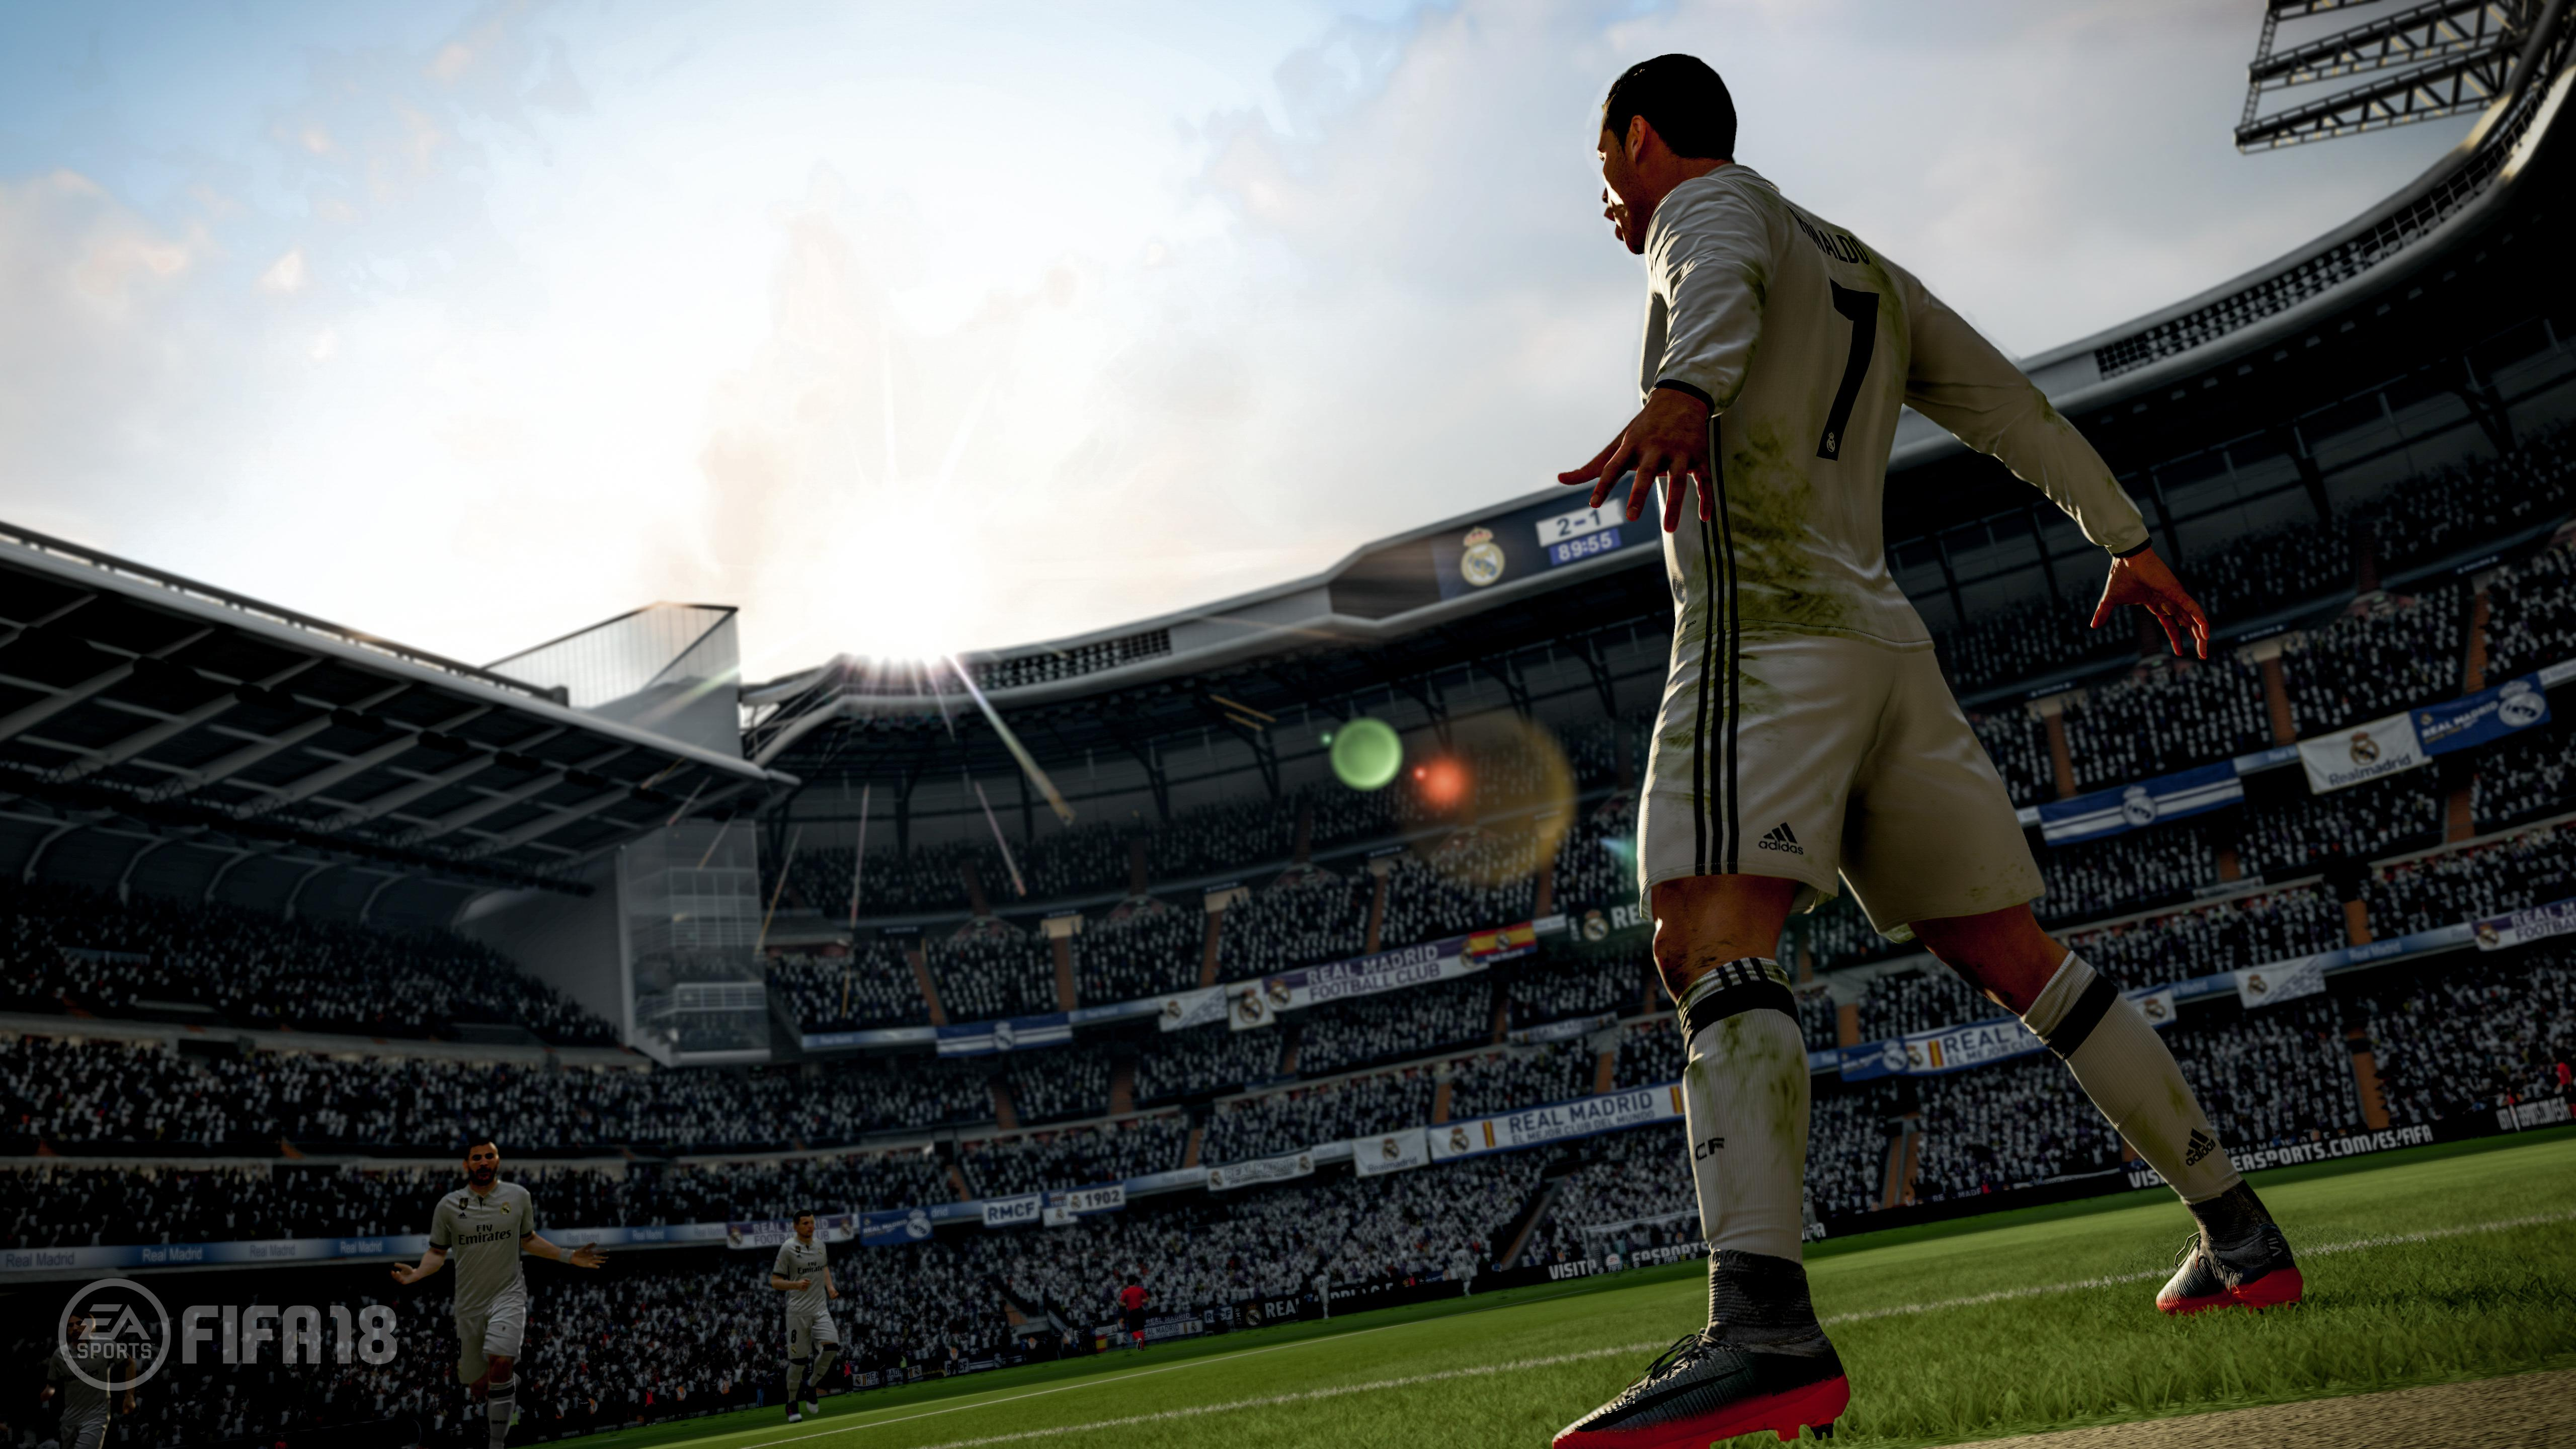 FIFA 18 arrives on September 29 and the web app has launched now